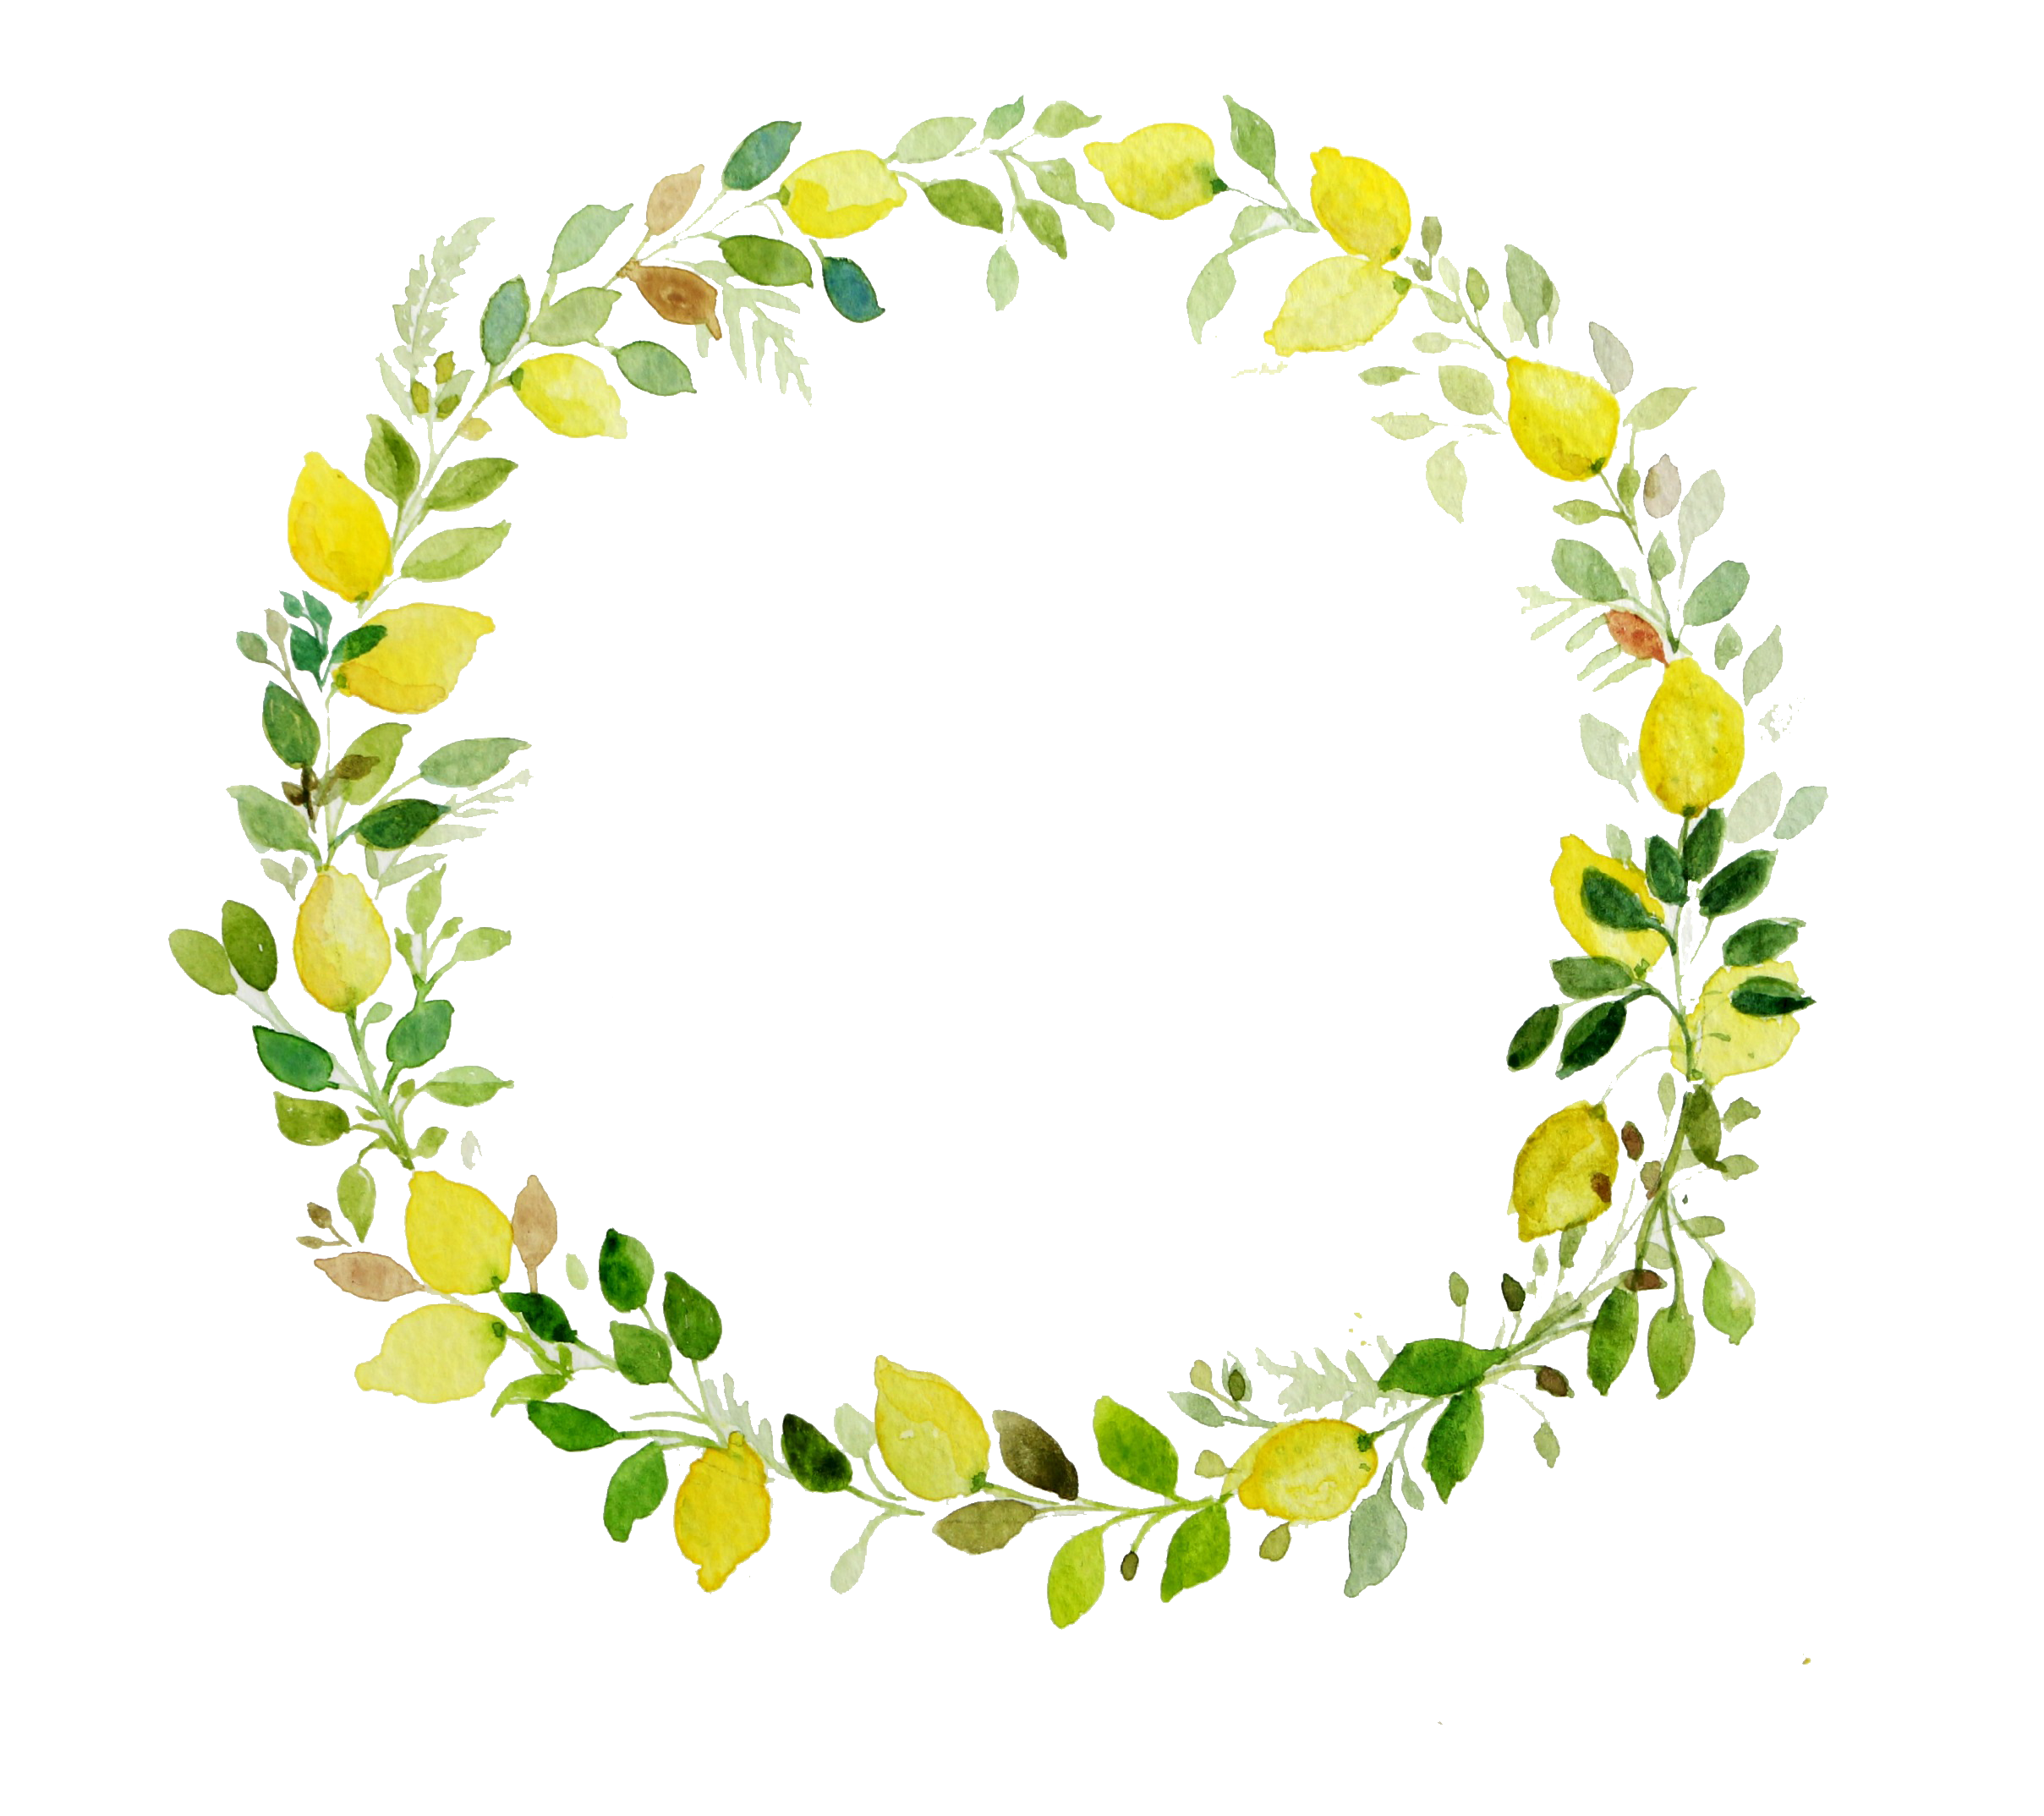 clip royalty free stock Lemon clipart watercolor. How to paint a.